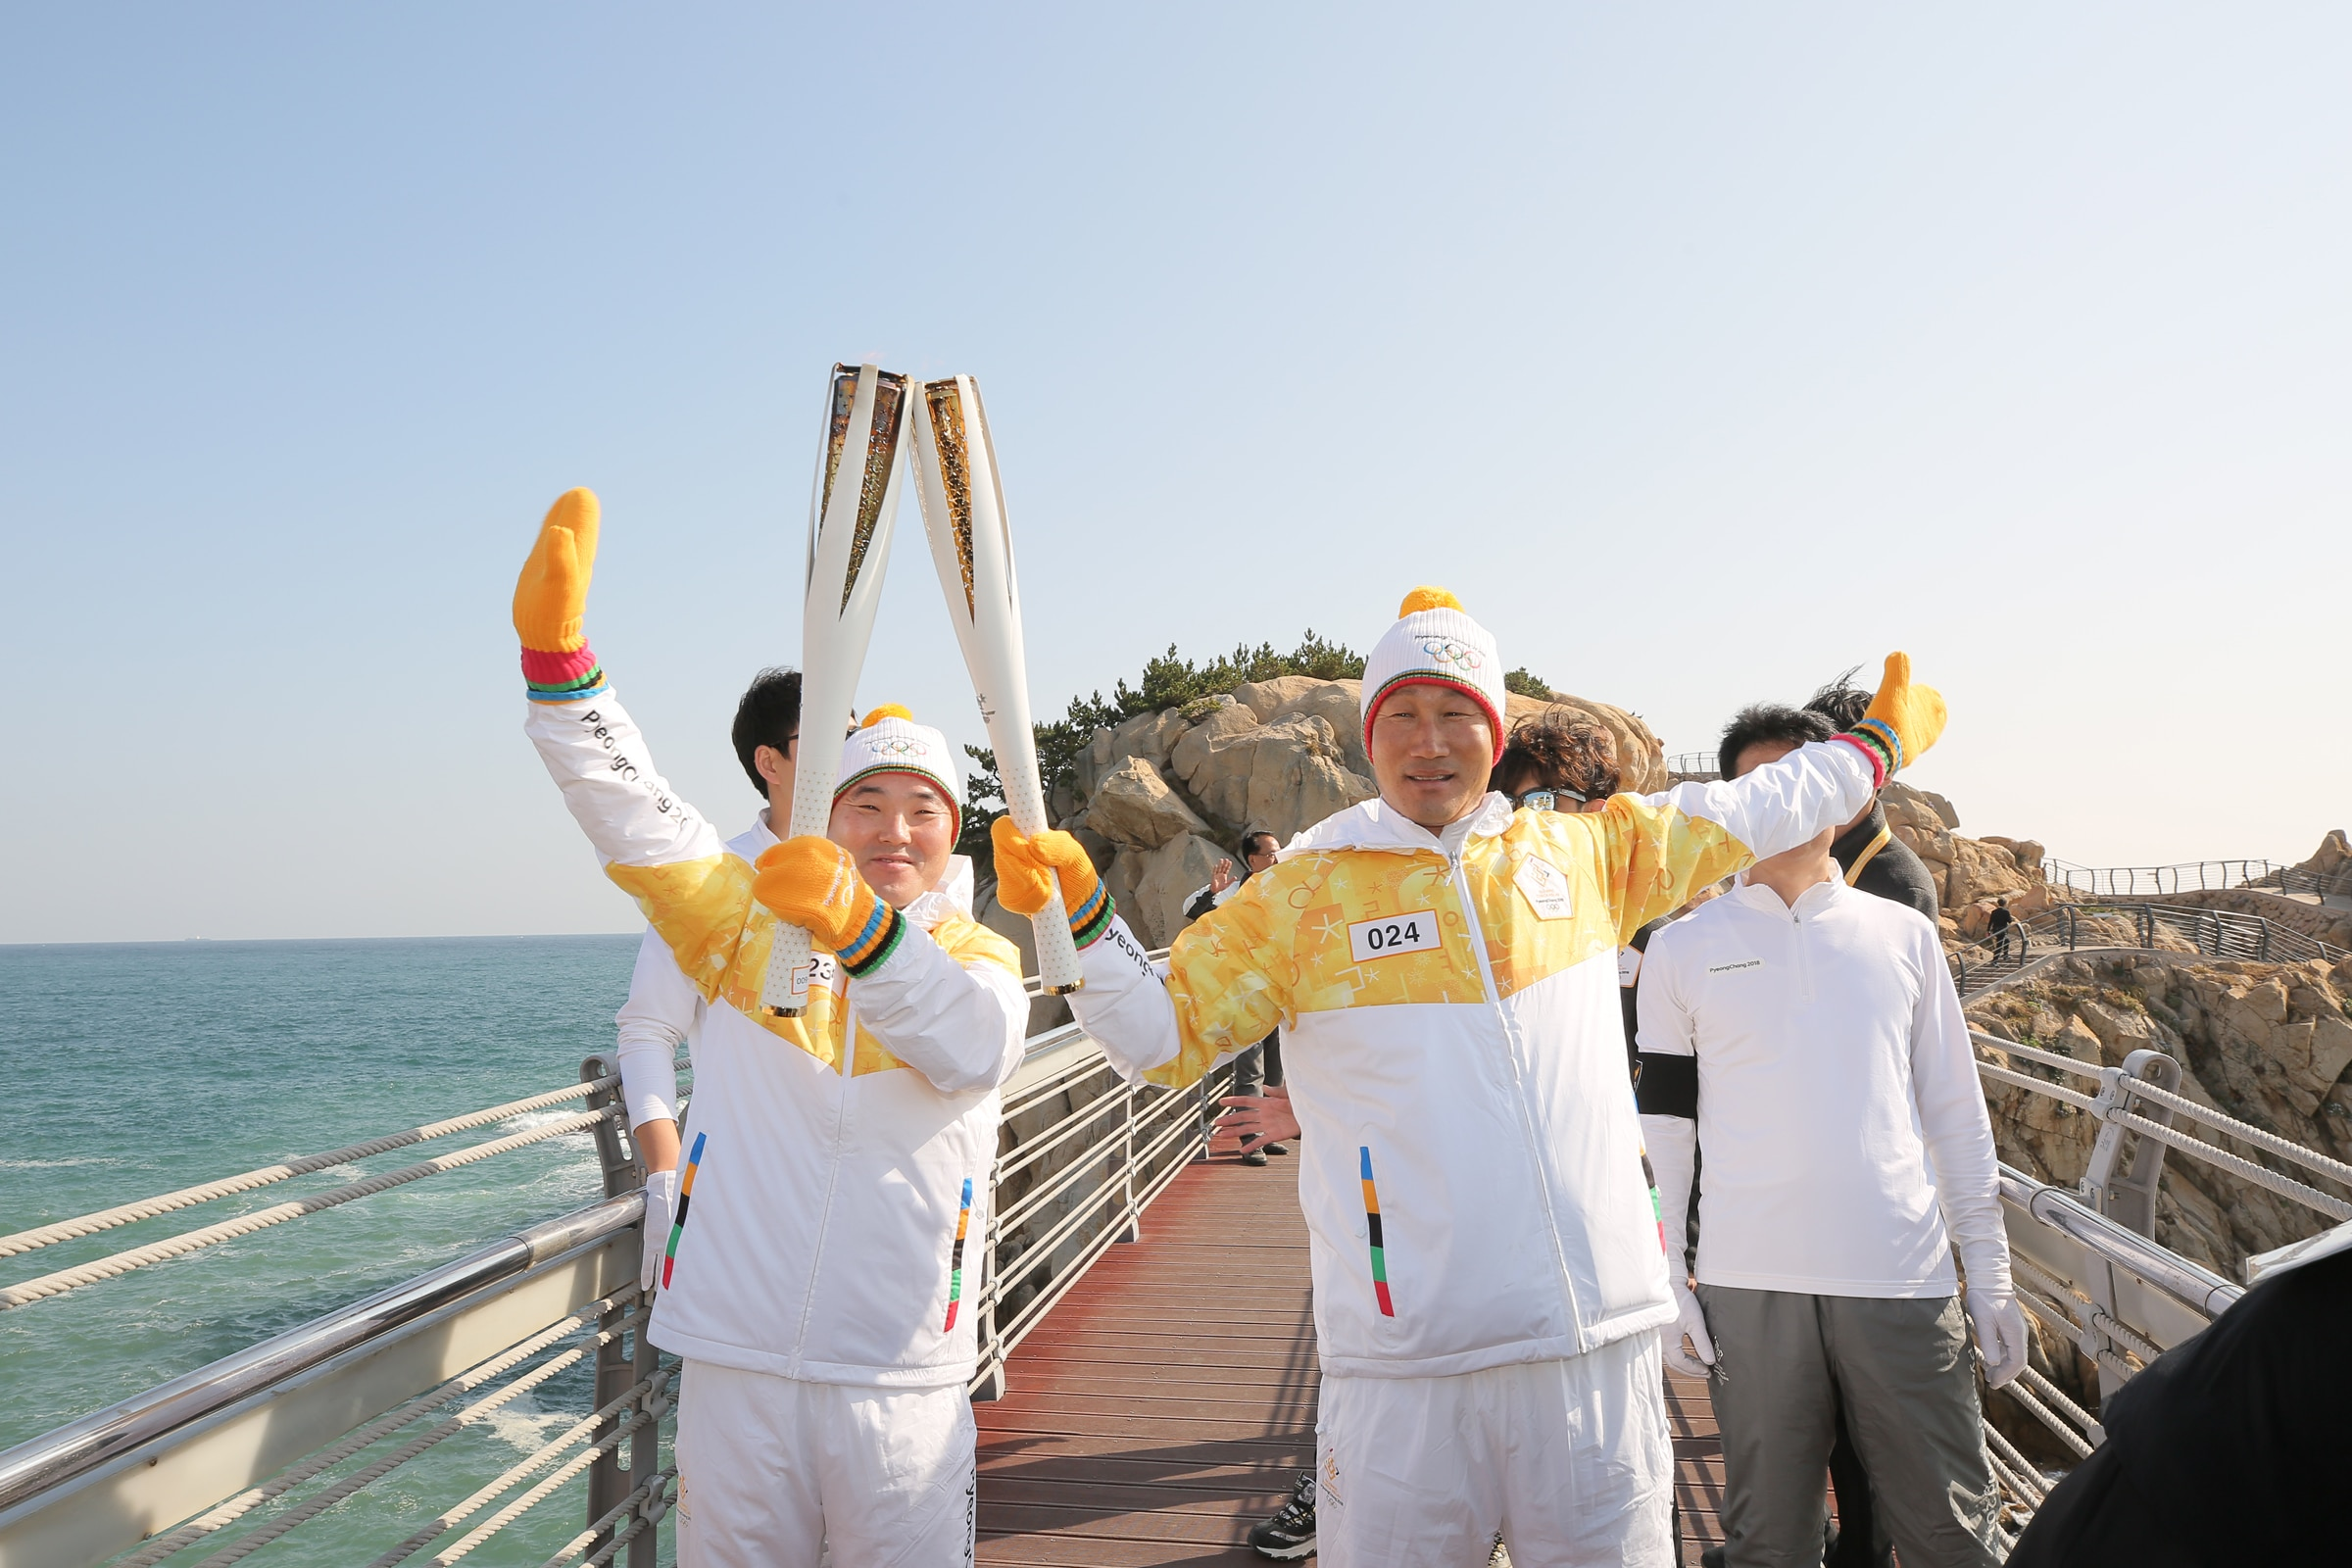 PyeongChang 2018 Olympic Torch Relay - Day 9